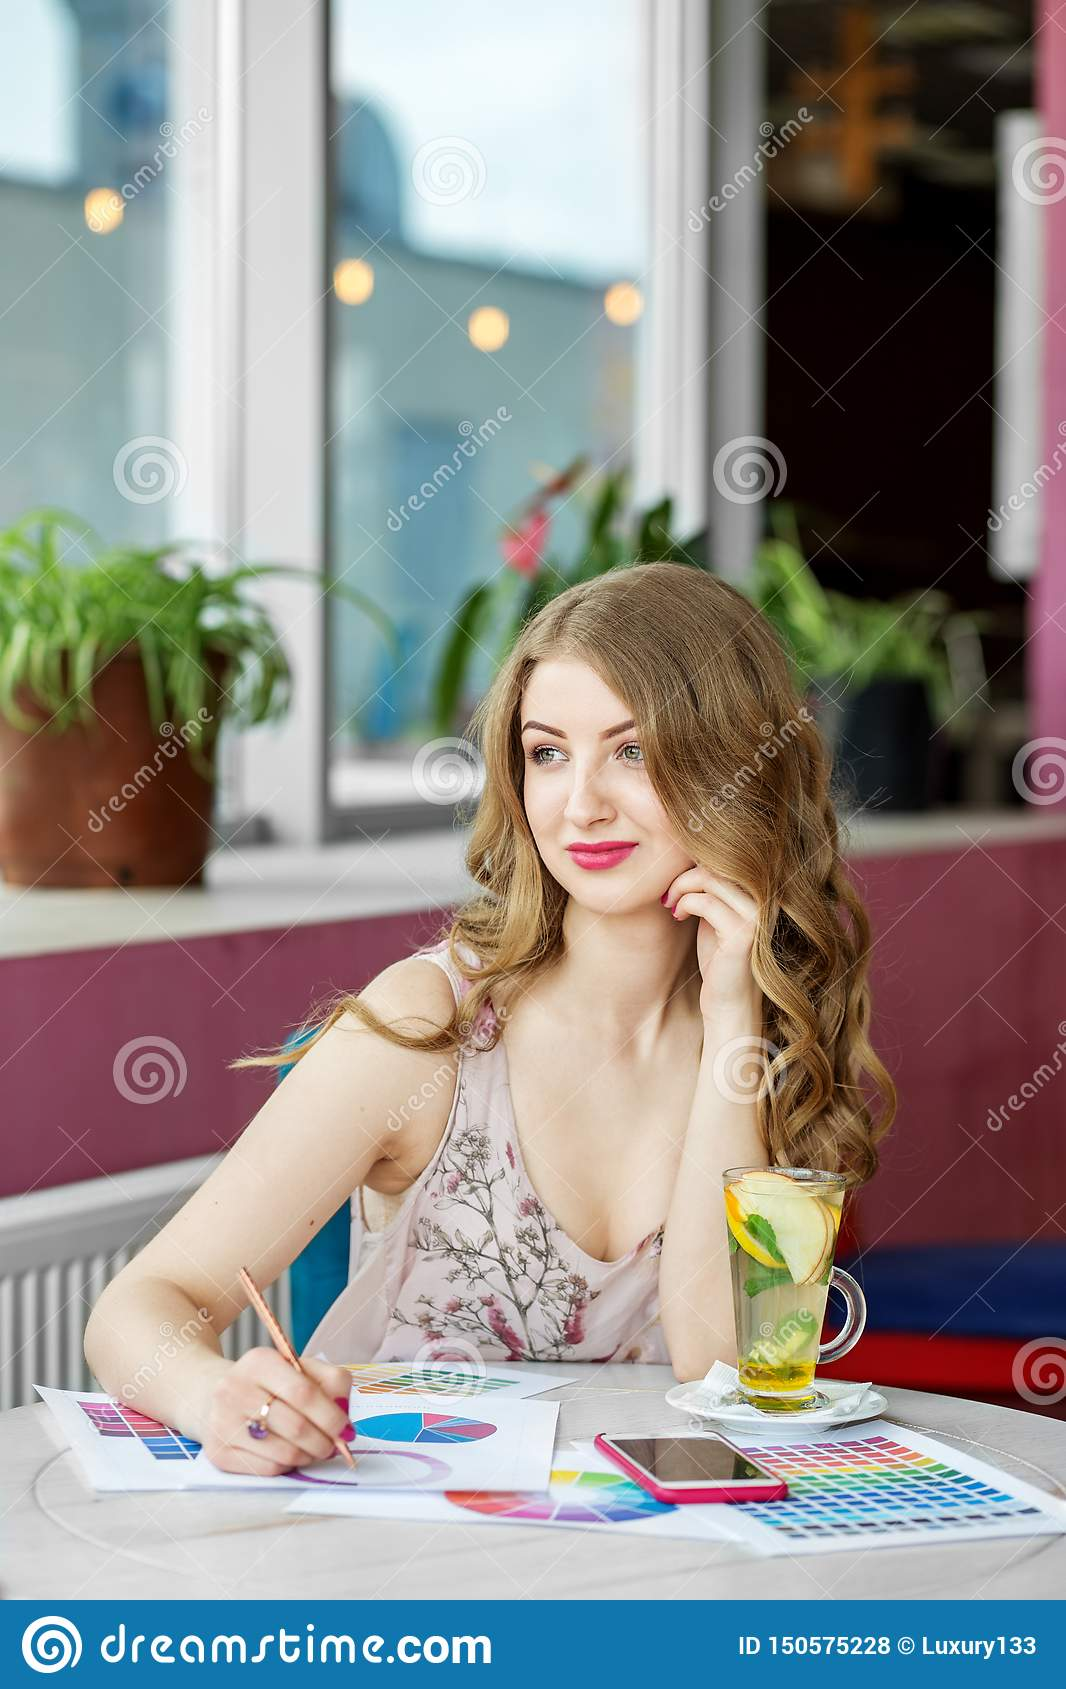 Beautiful successful woman working remotely. Citrus tea with mint. The concept of work, business, education, freelance, lifestyle